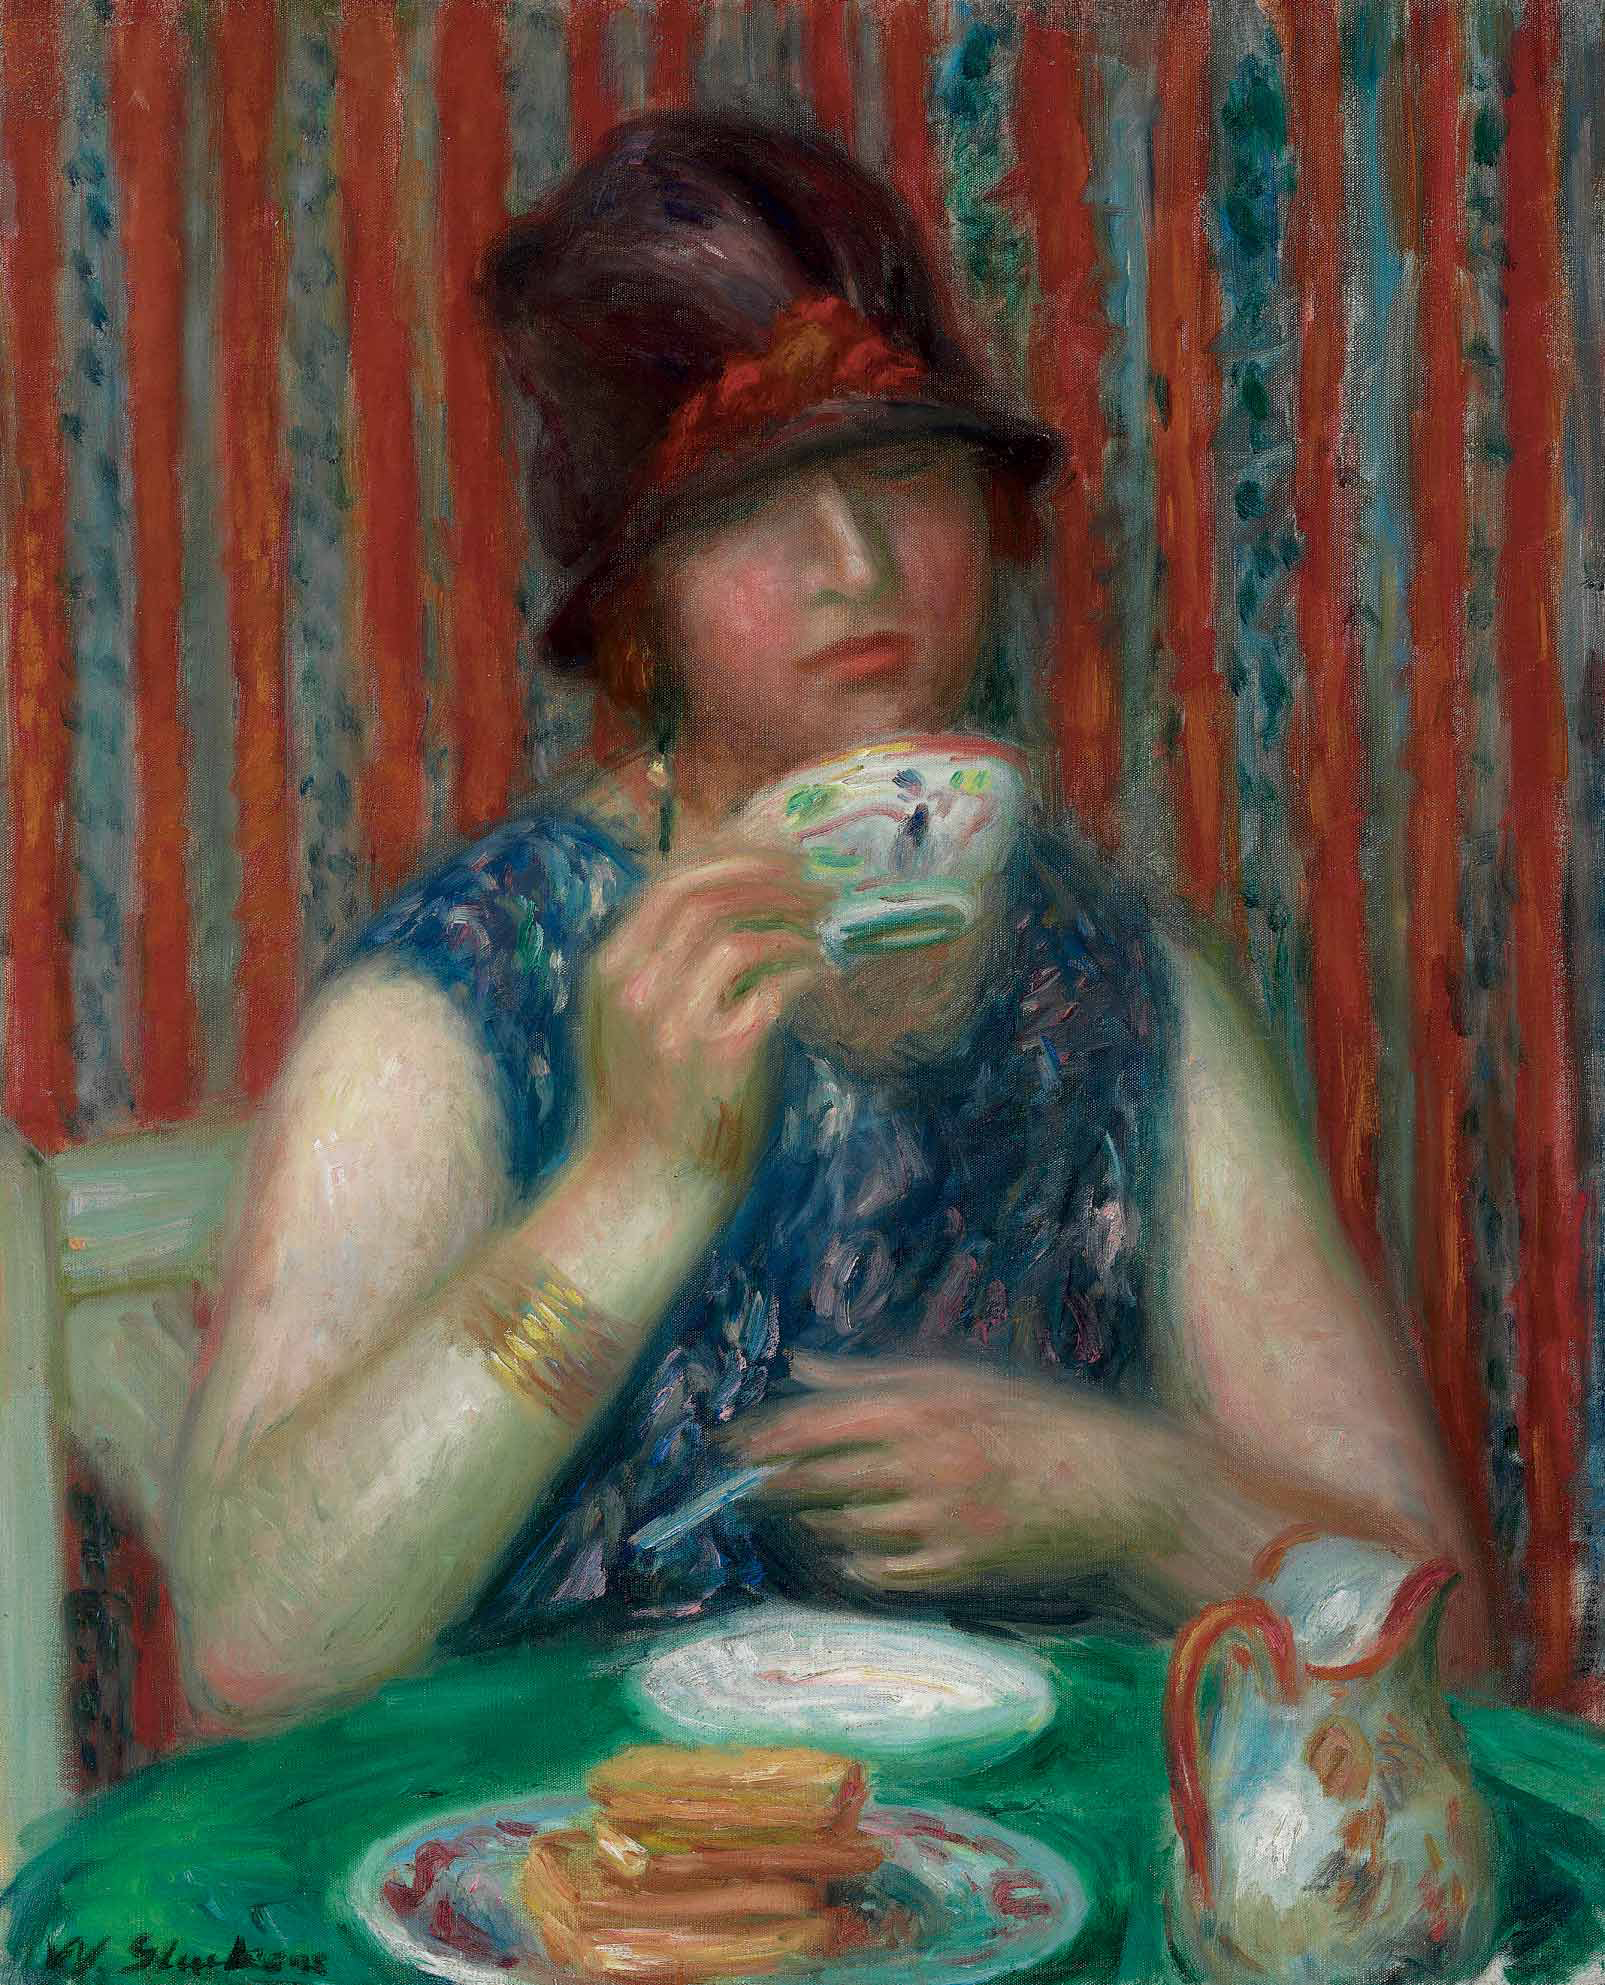 Girl with Teacup